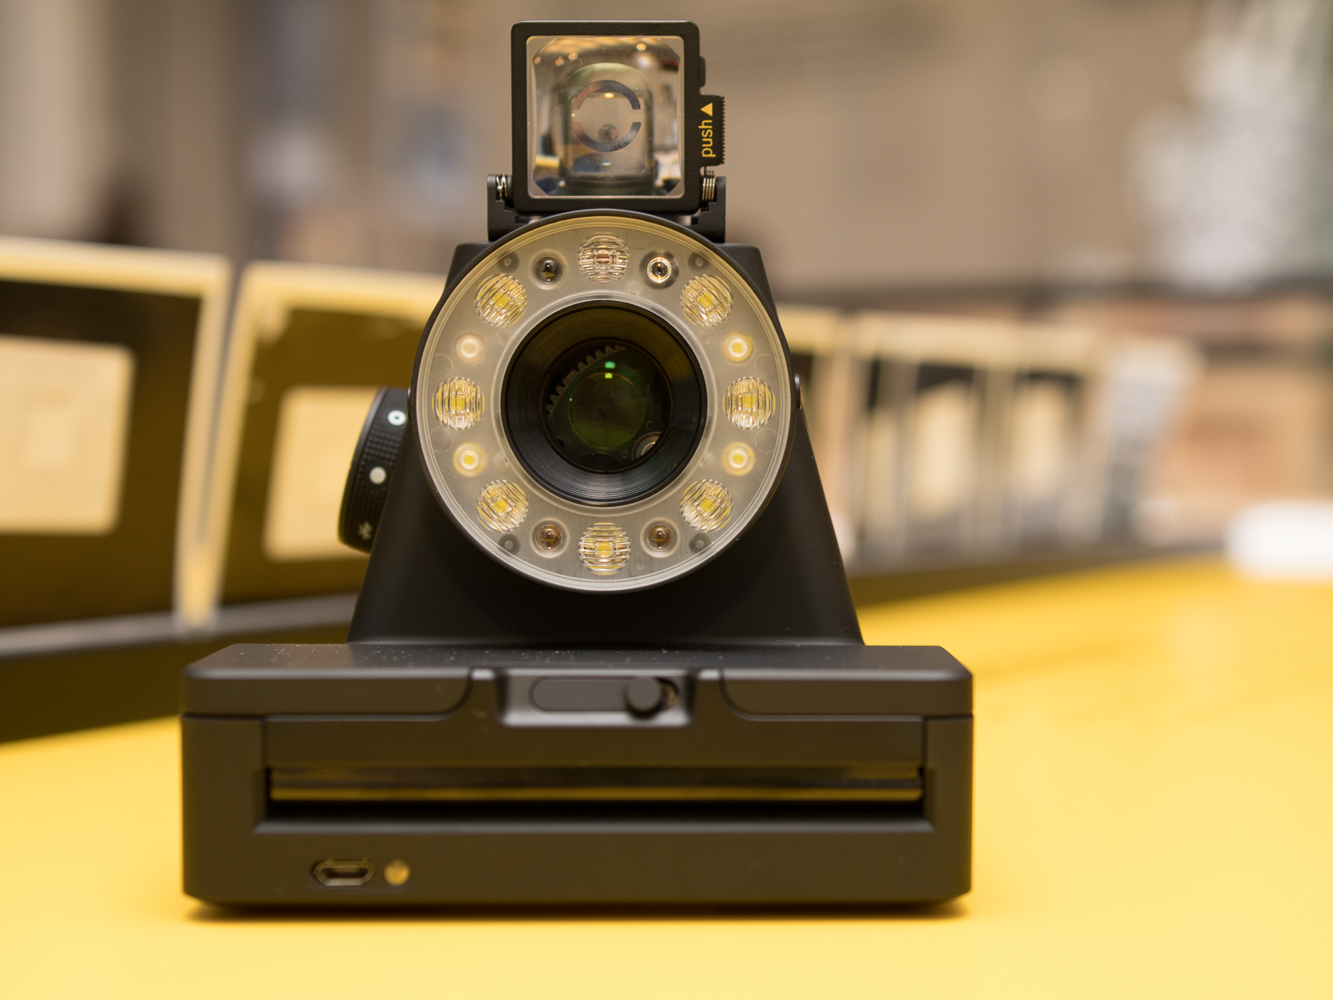 Impossible Project makes a modern Polaroid camera possible